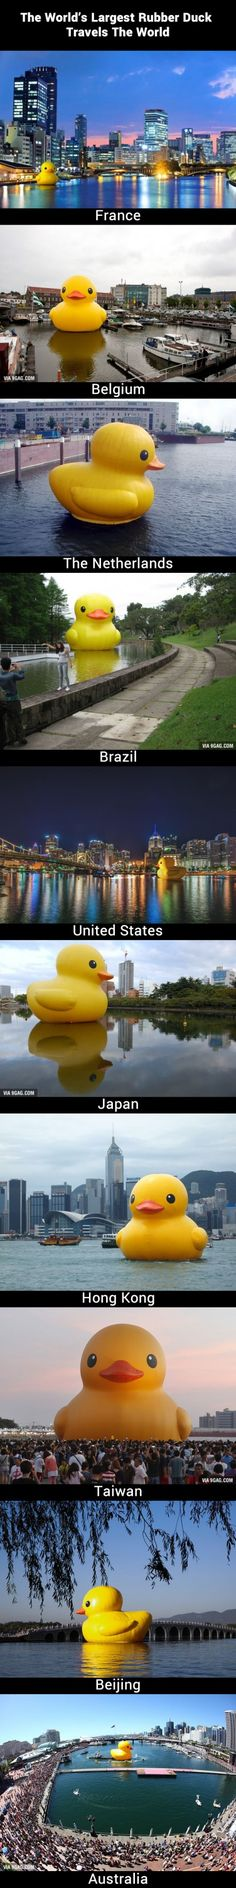 The World's Largest Rubber Duck Travels The World